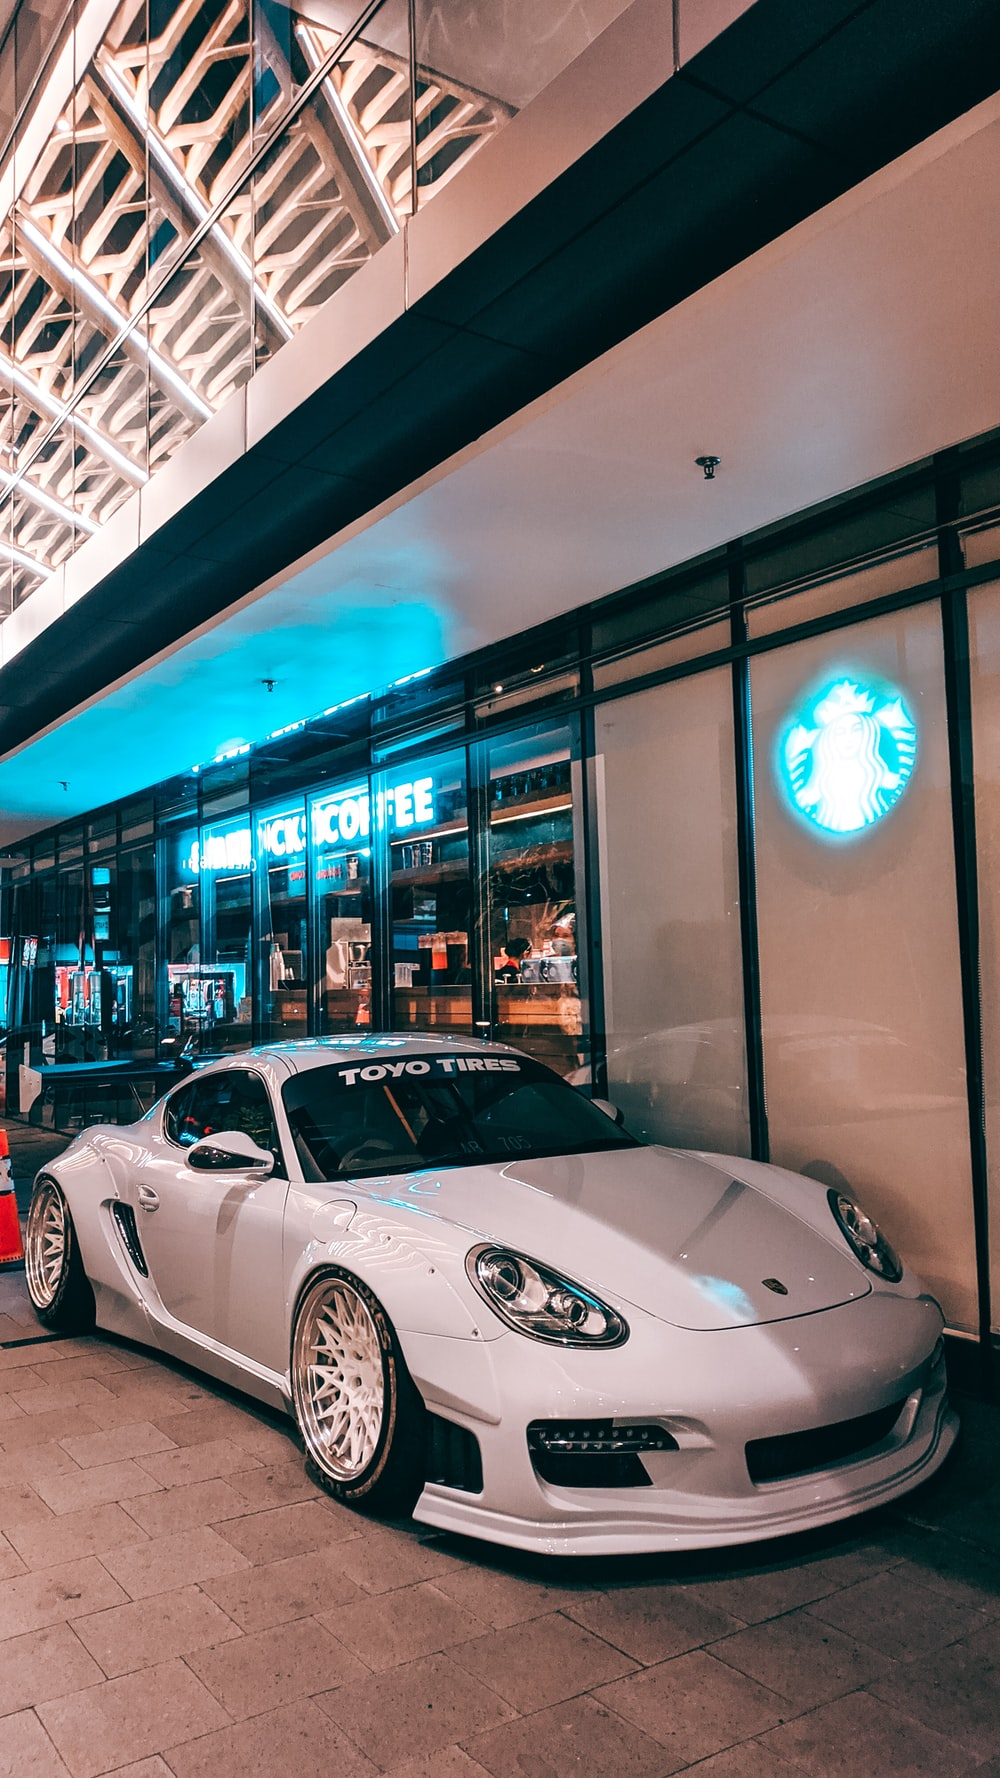 white porsche 911 parked in front of store